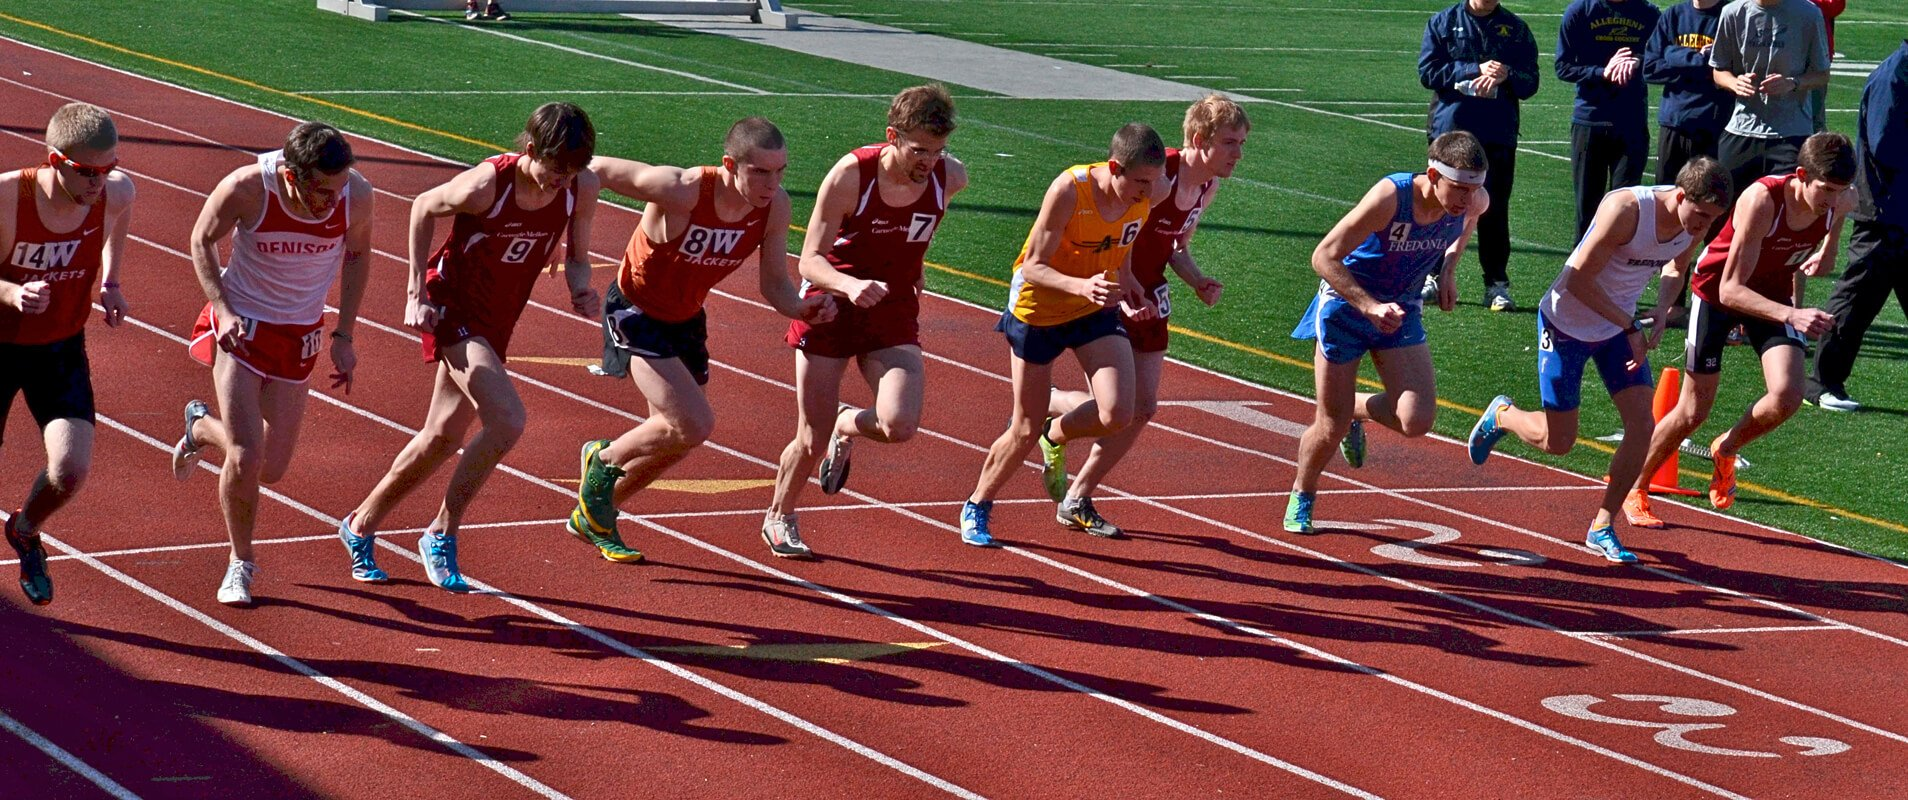 Top 10 Universities in Canada for Track and Field